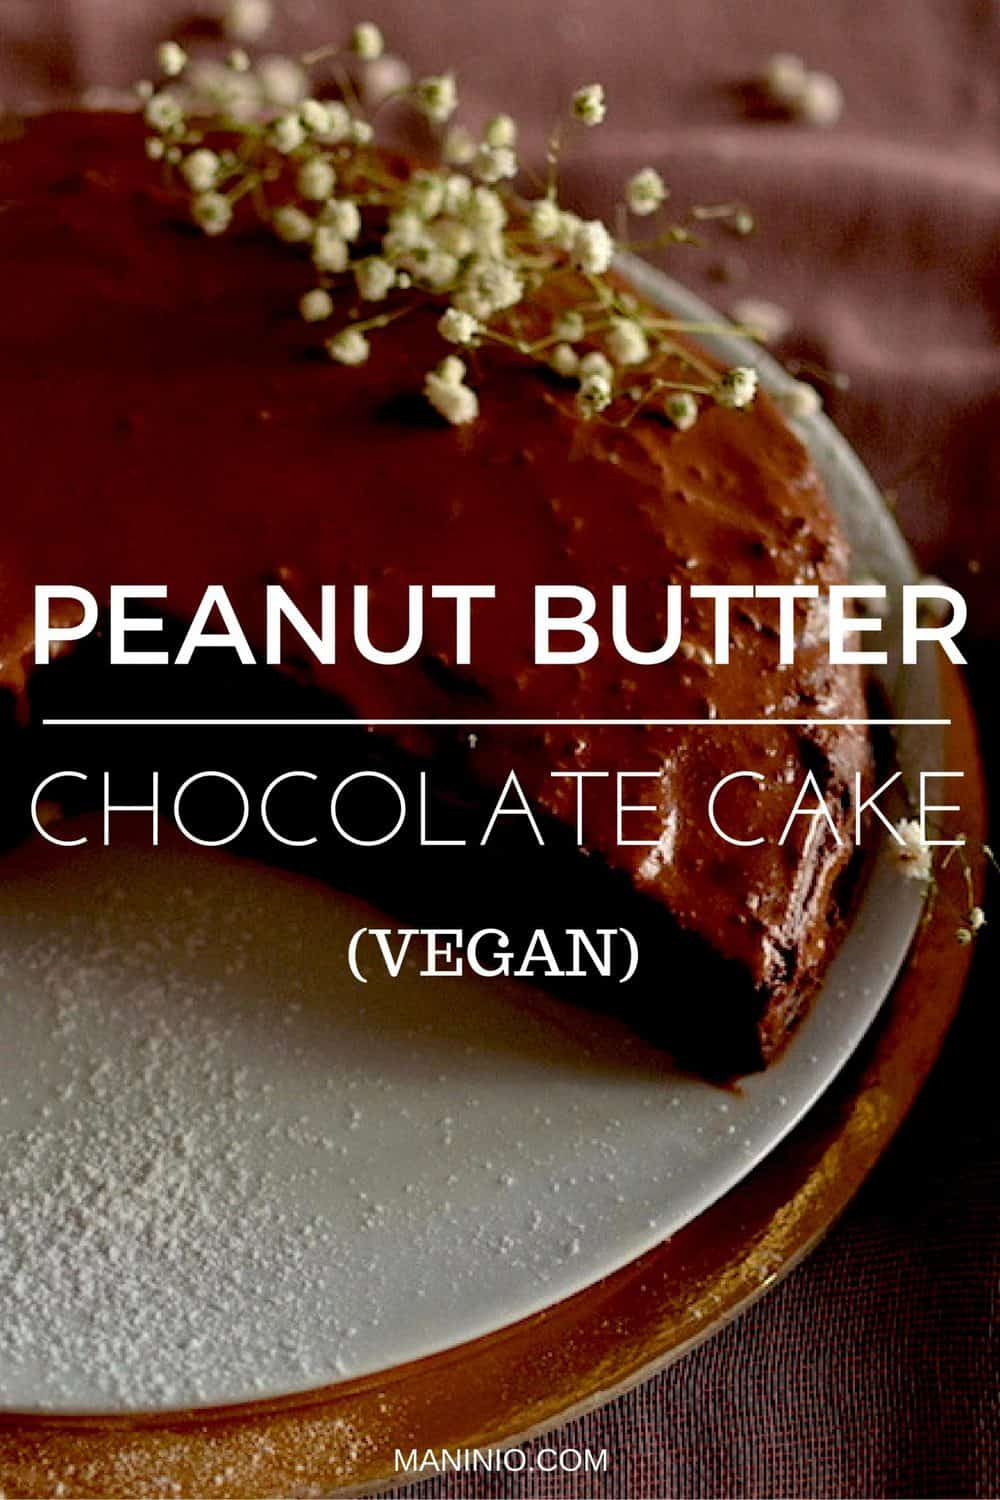 Vegan Chocolate Cake with peanut butter